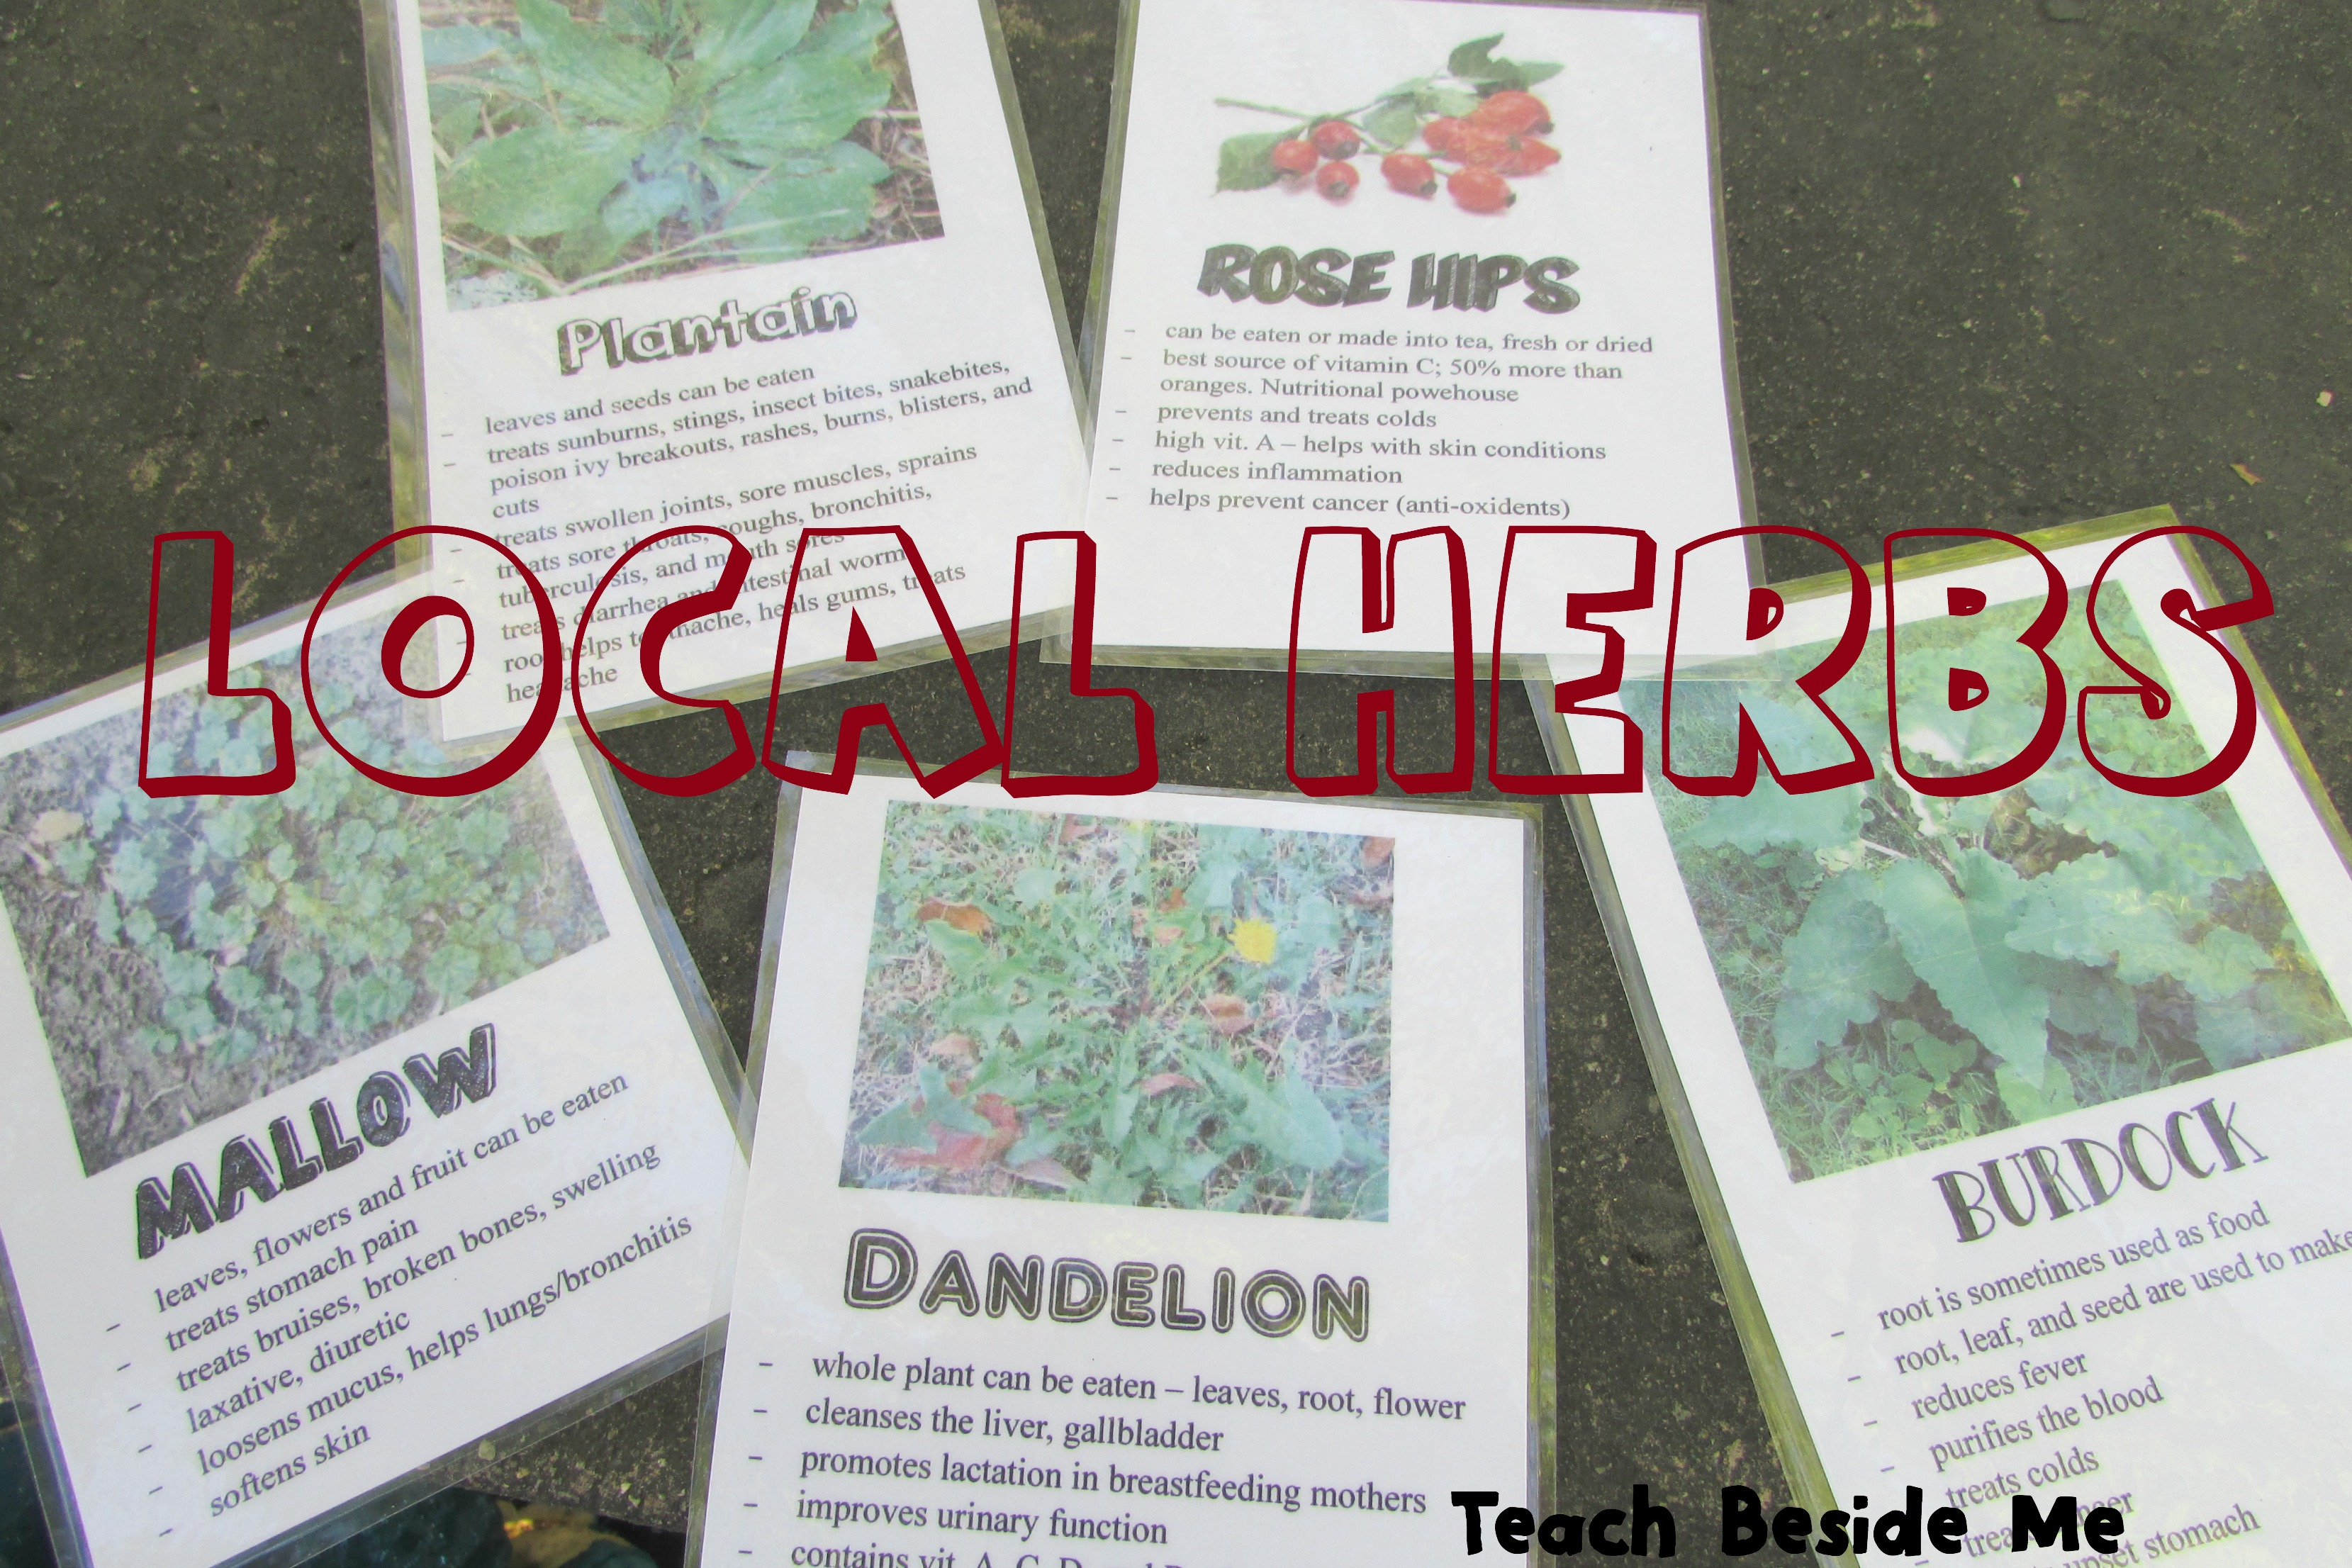 Learn your local herbs